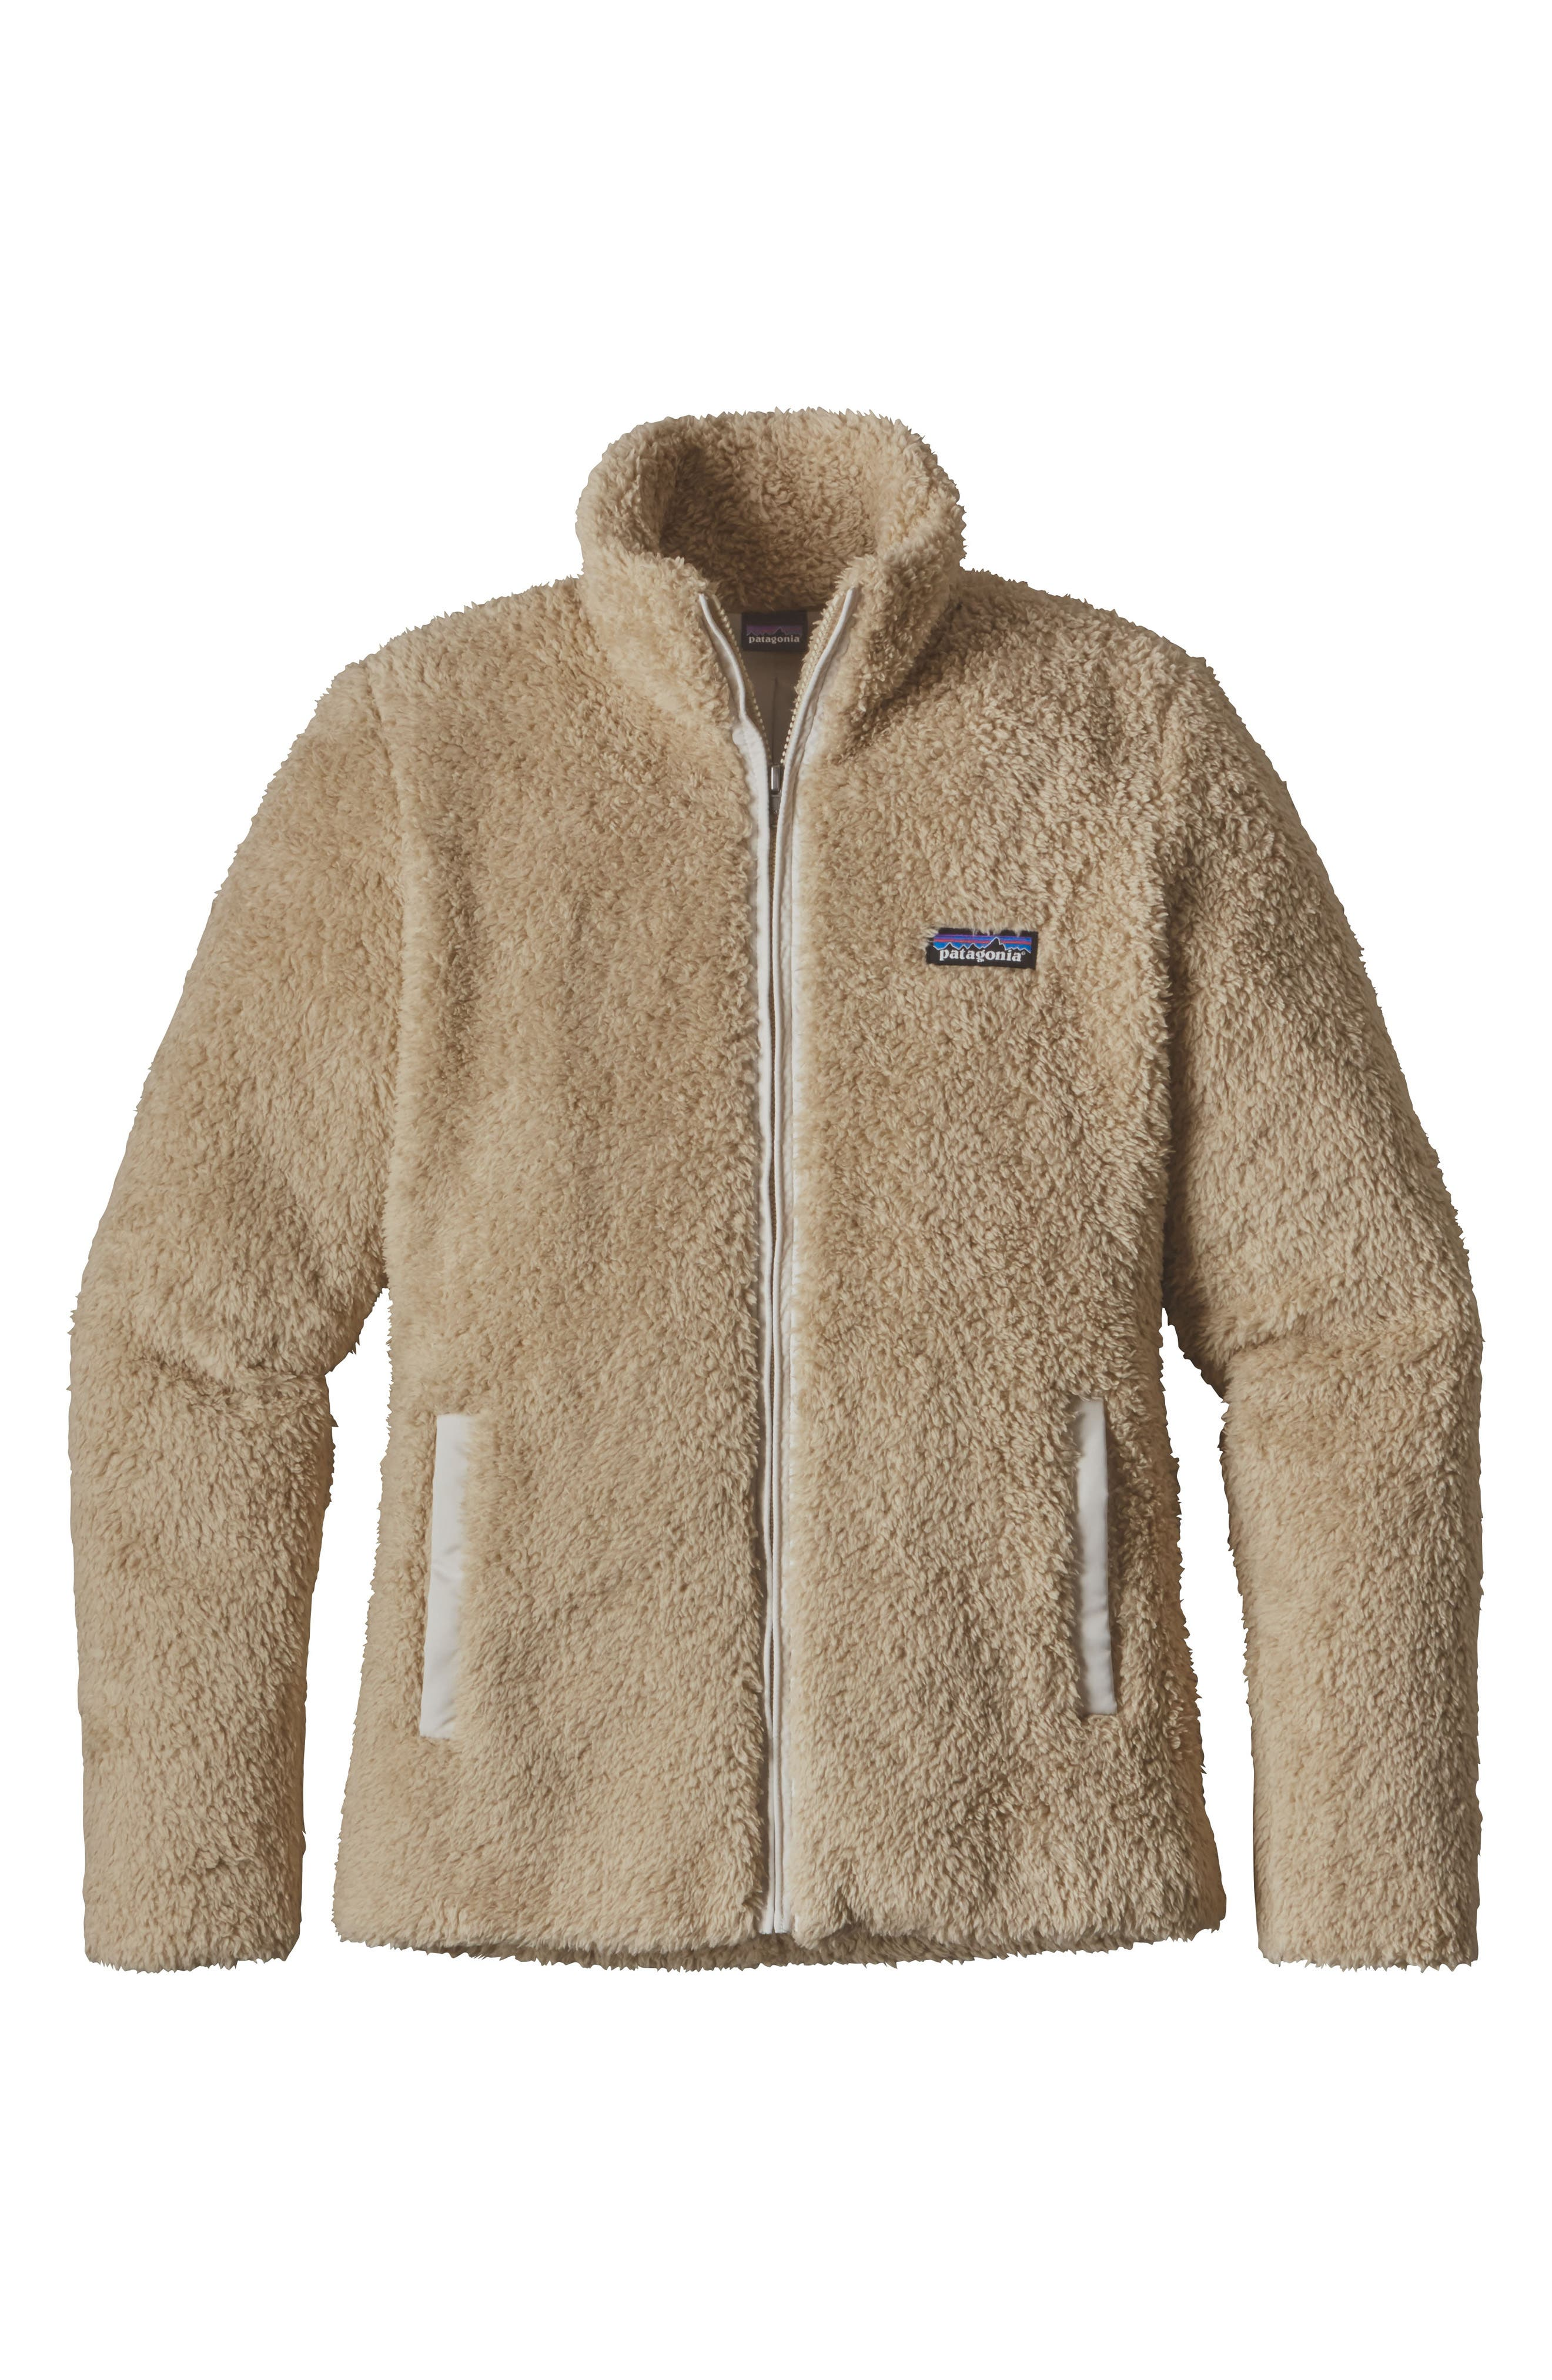 Los Gatos Fleece Jacket,                             Alternate thumbnail 8, color,                             EL CAP KHAKI